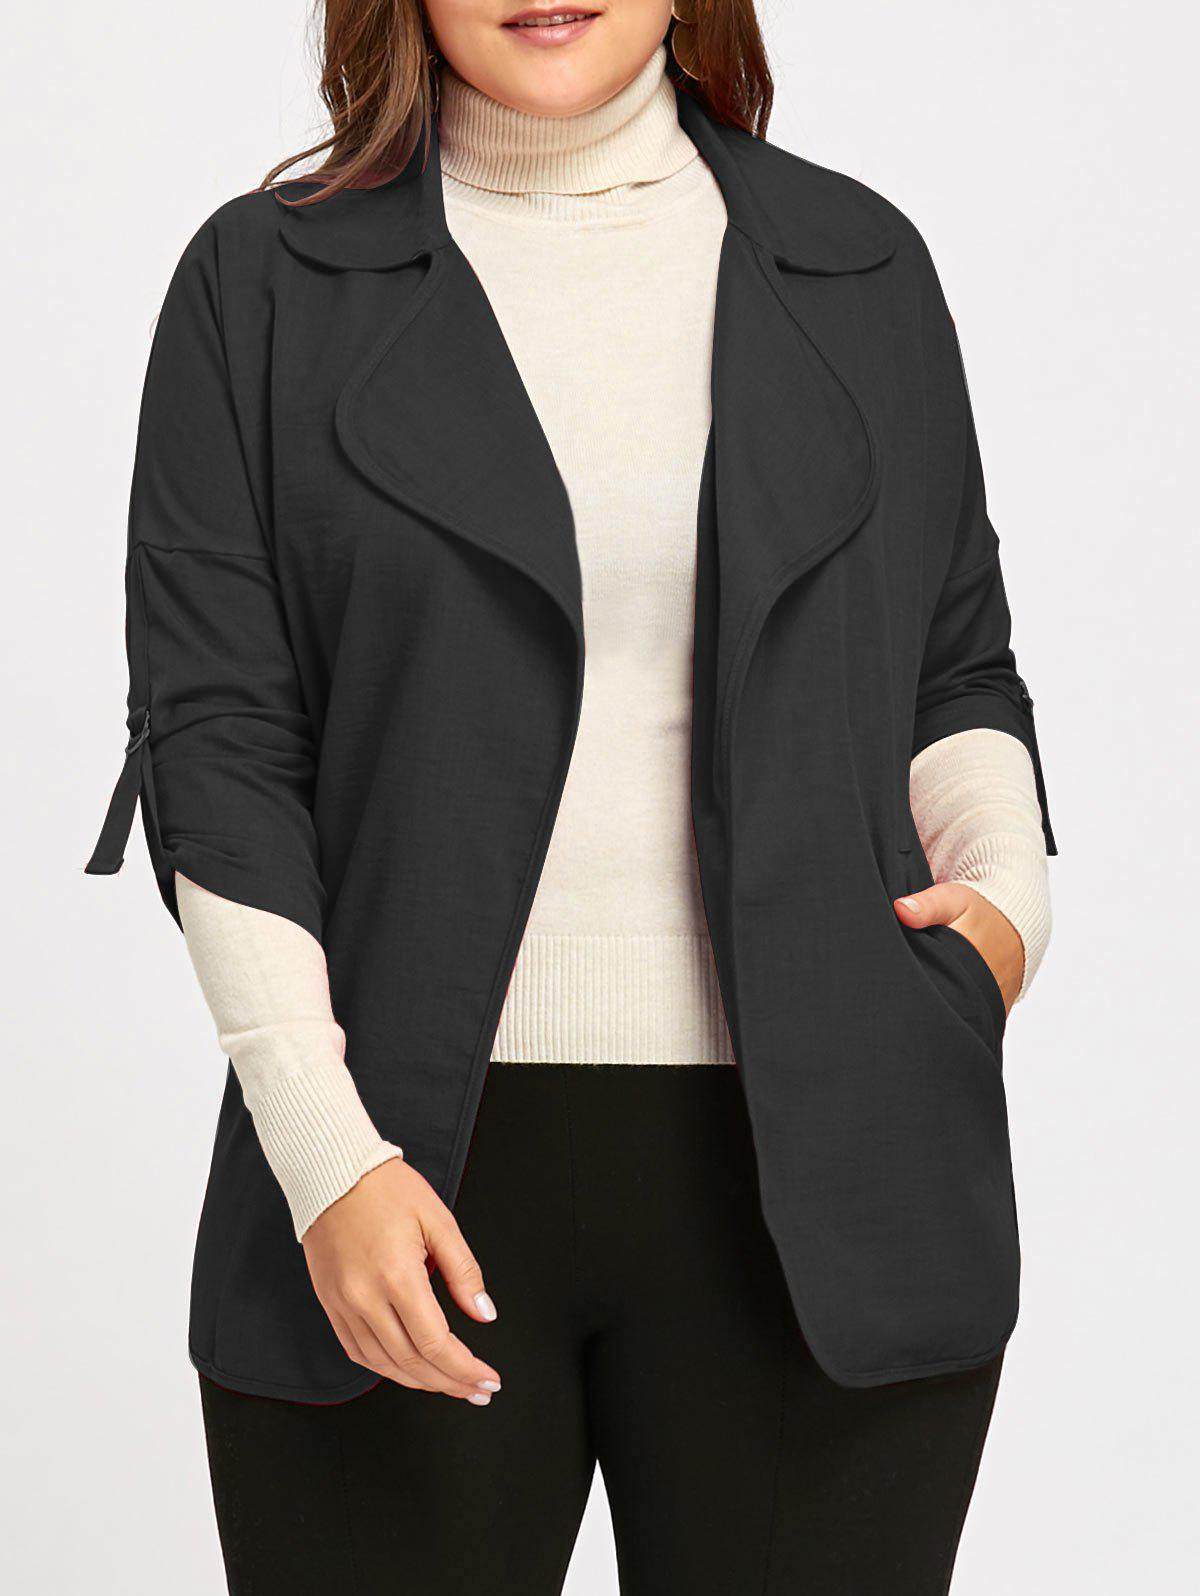 Fancy Roll Up Sleeve Turndown Collar Plus Size Trench Coat